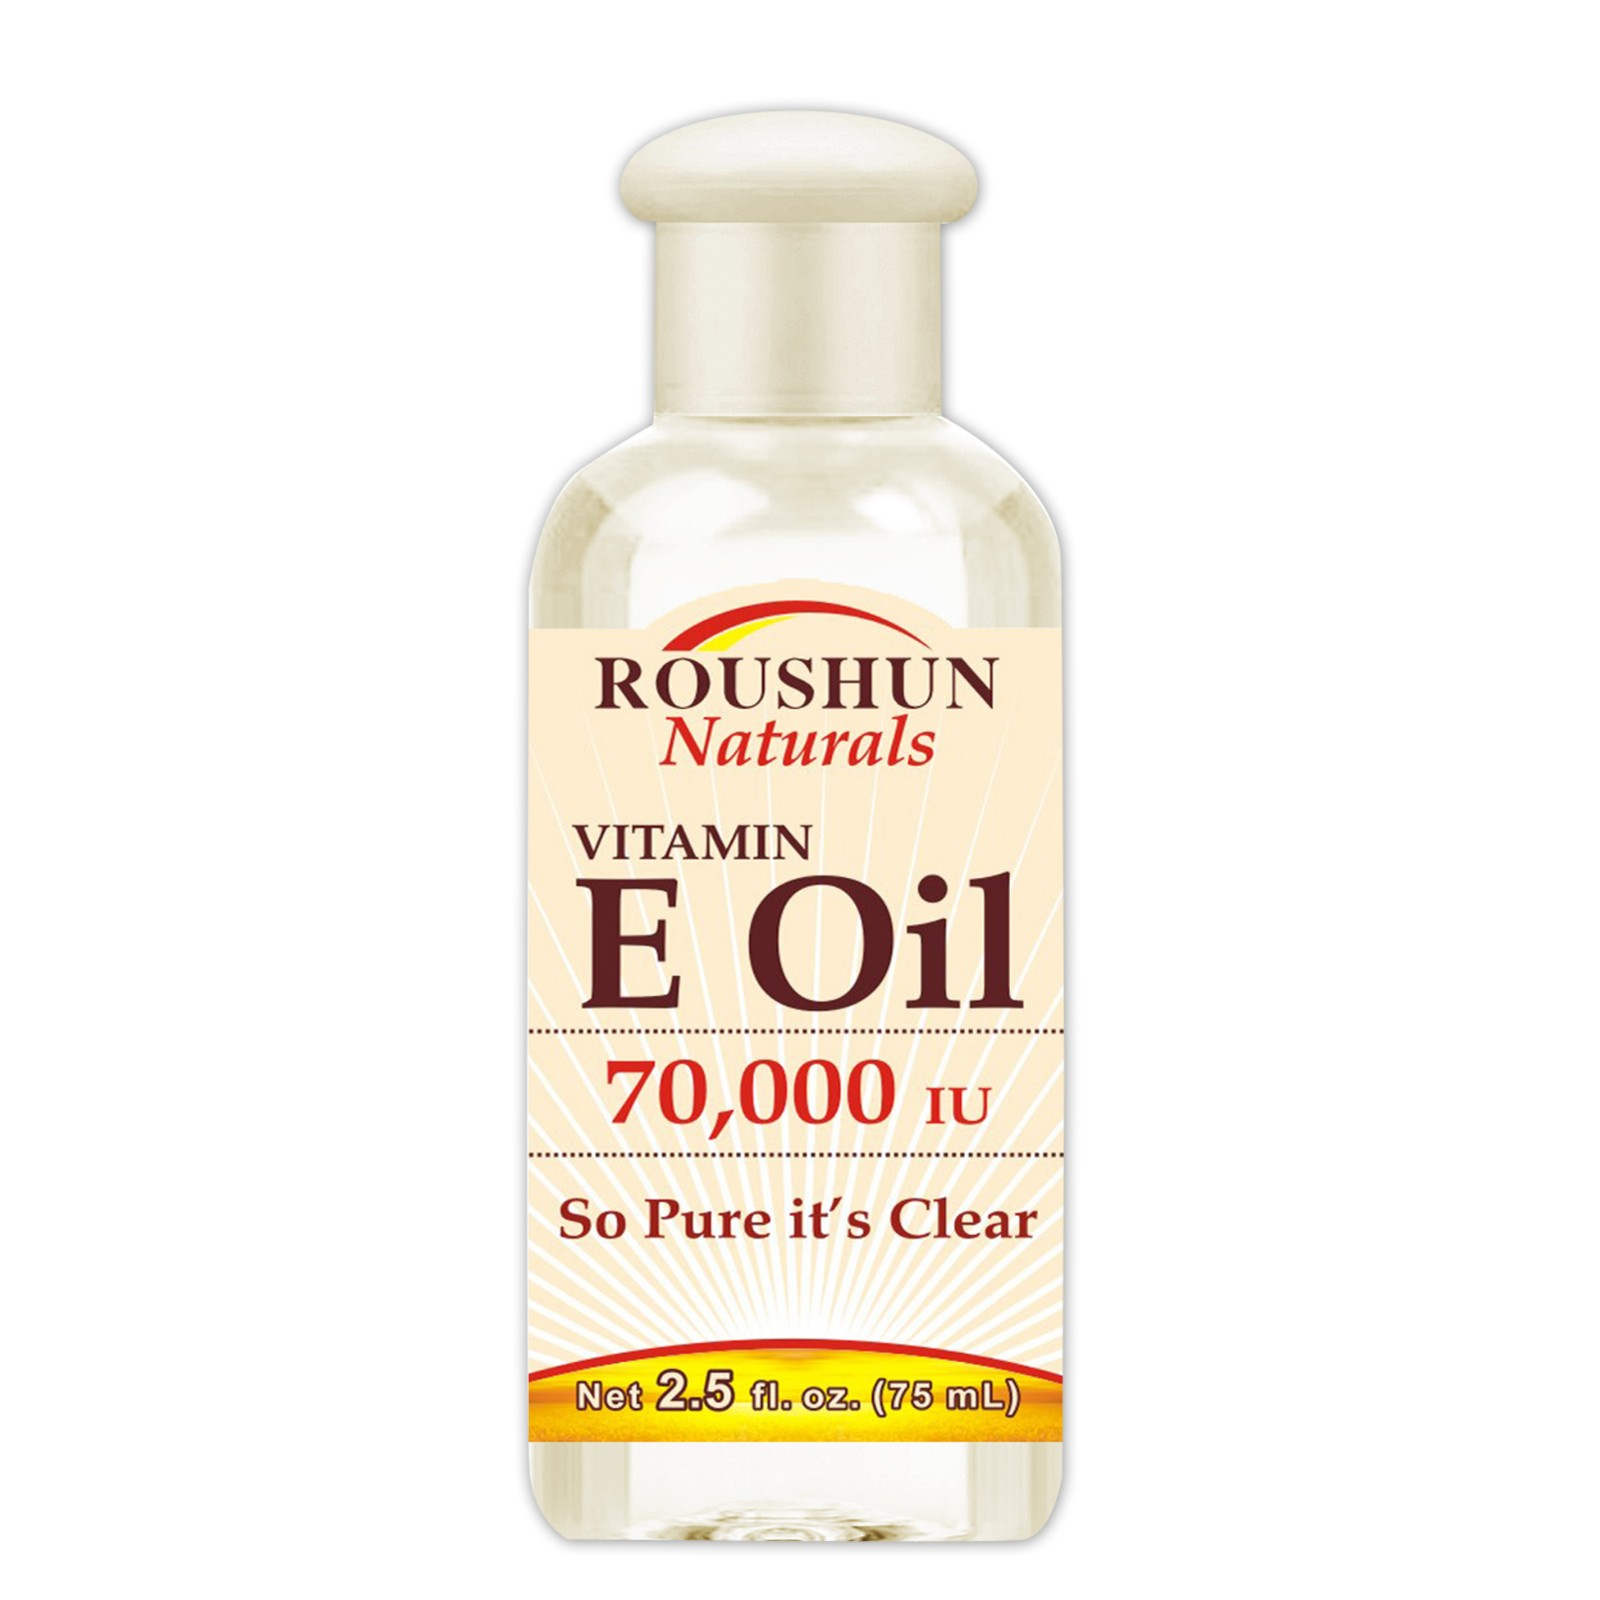 Roushun brand quality vitamin E oil moisturizing nourishing